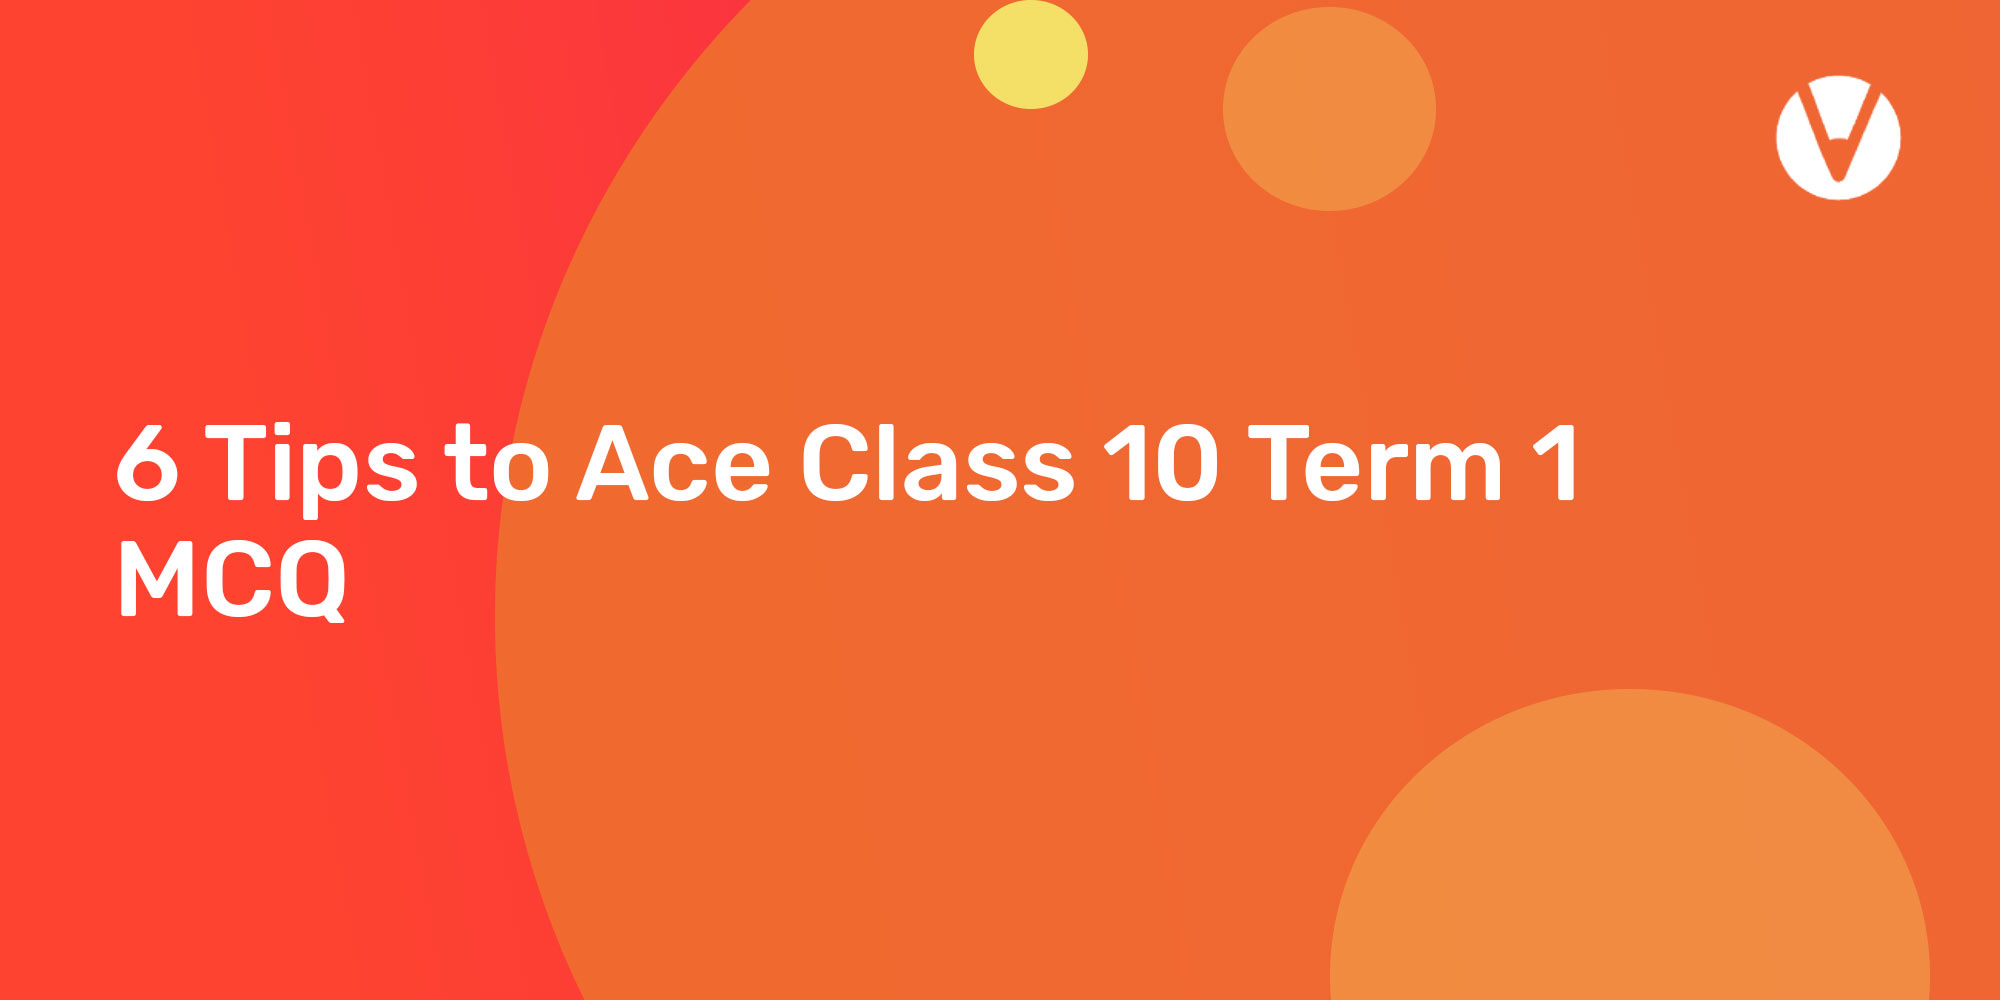 6 Tips to Ace Class 10 Term 1 MCQ